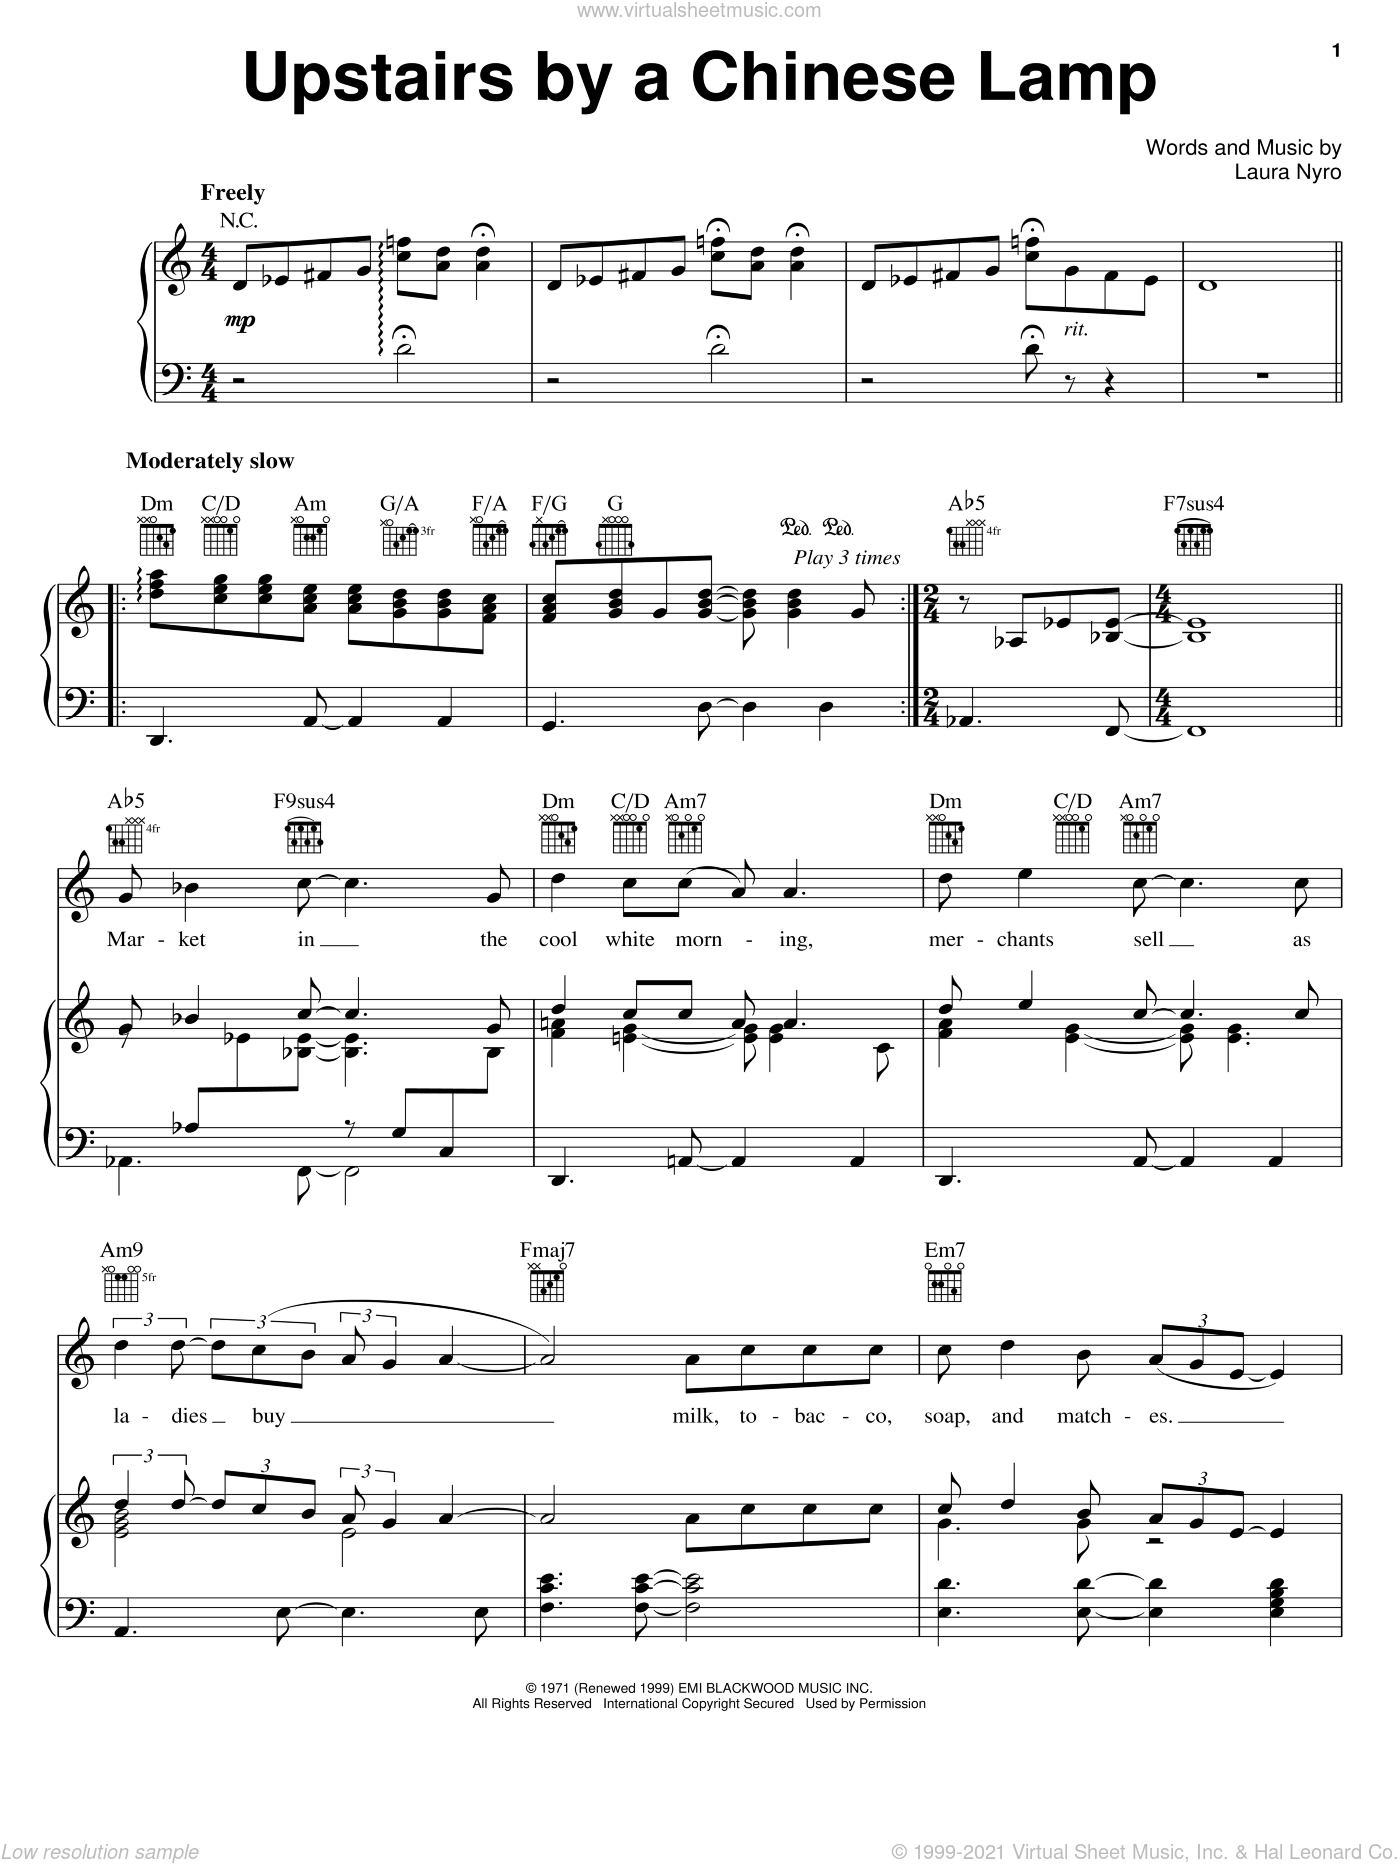 Upstairs By A Chinese Lamp sheet music for voice, piano or guitar by Laura Nyro